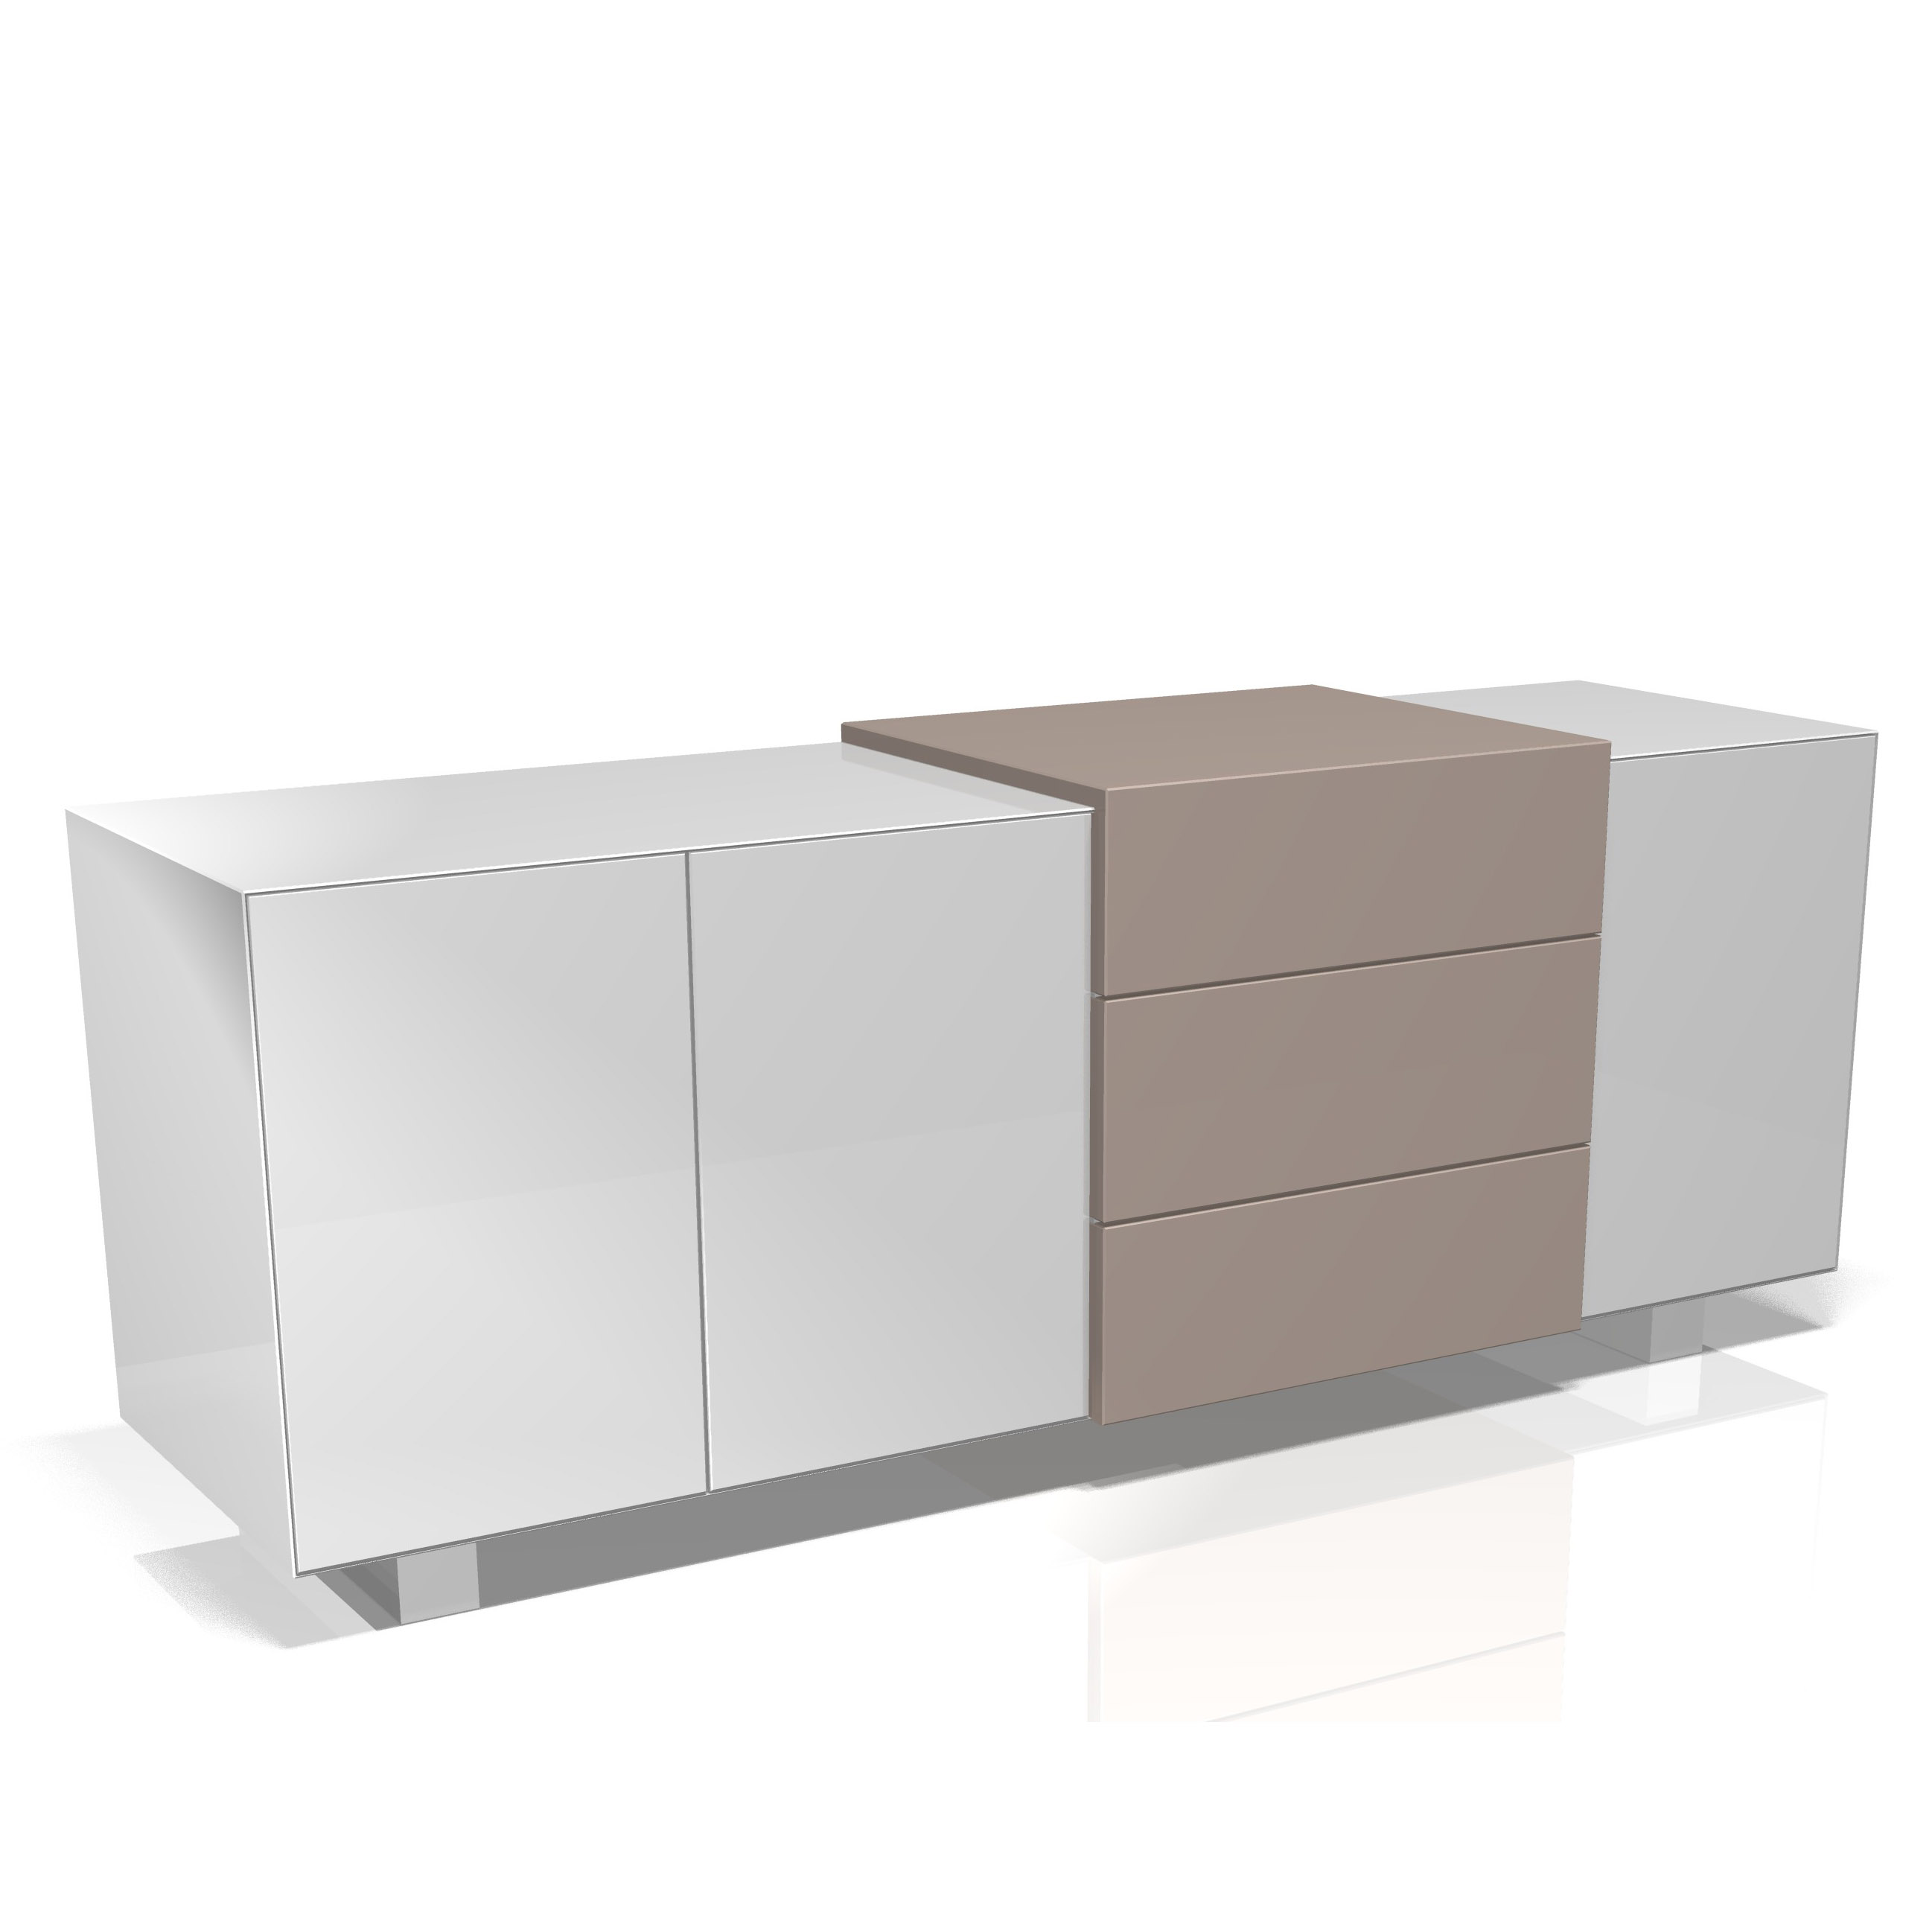 Bruus design gillmore space marlow collection for Sideboard taupe